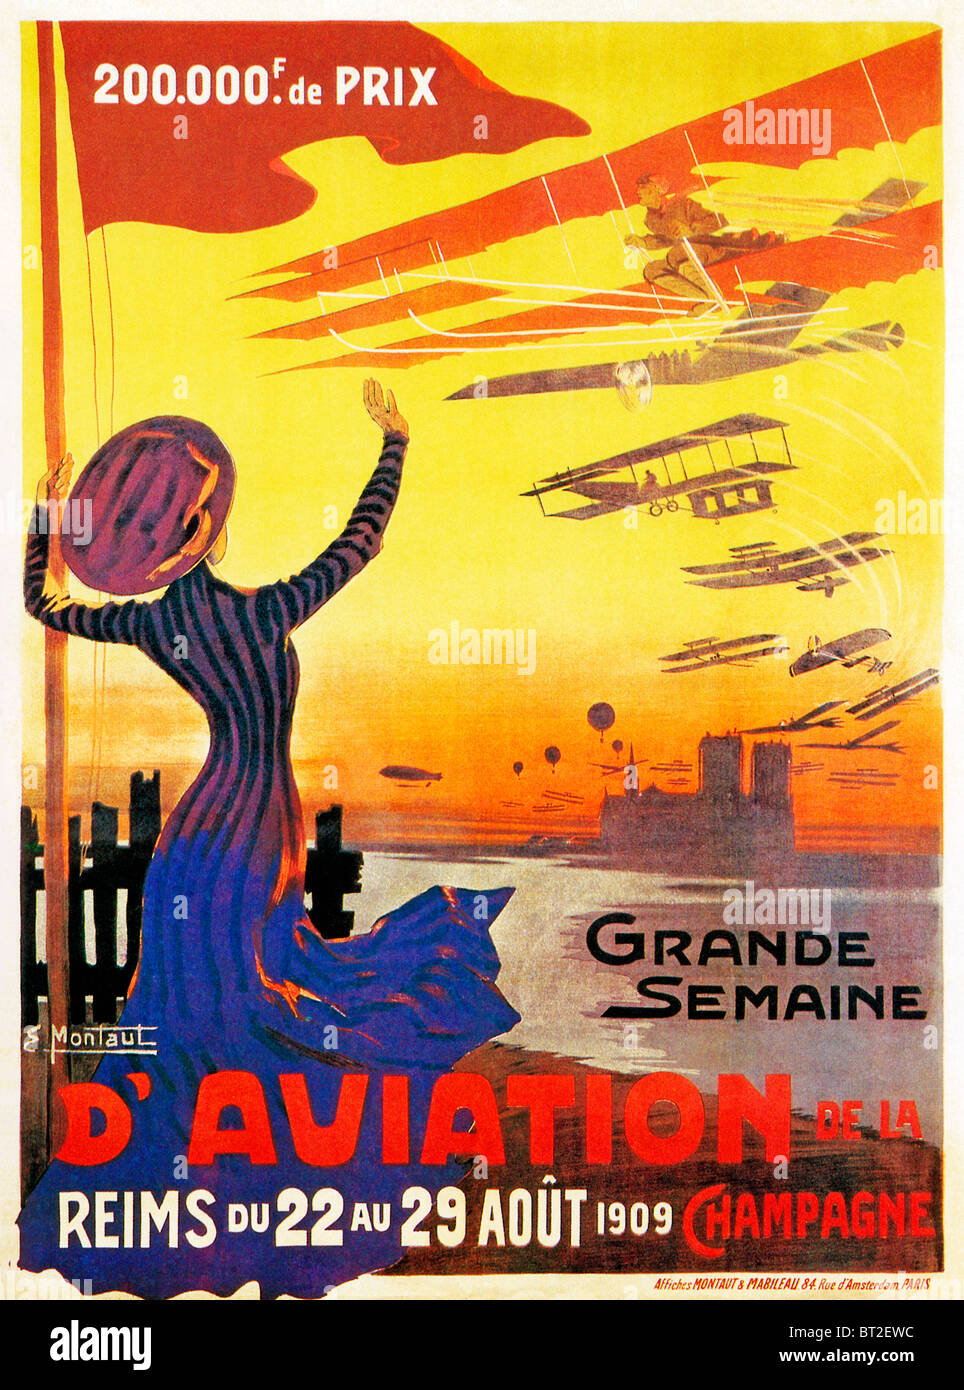 Grande Semaine dAviation, Reims, 1909 affiche pour l'air races en Champagne de France Photo Stock